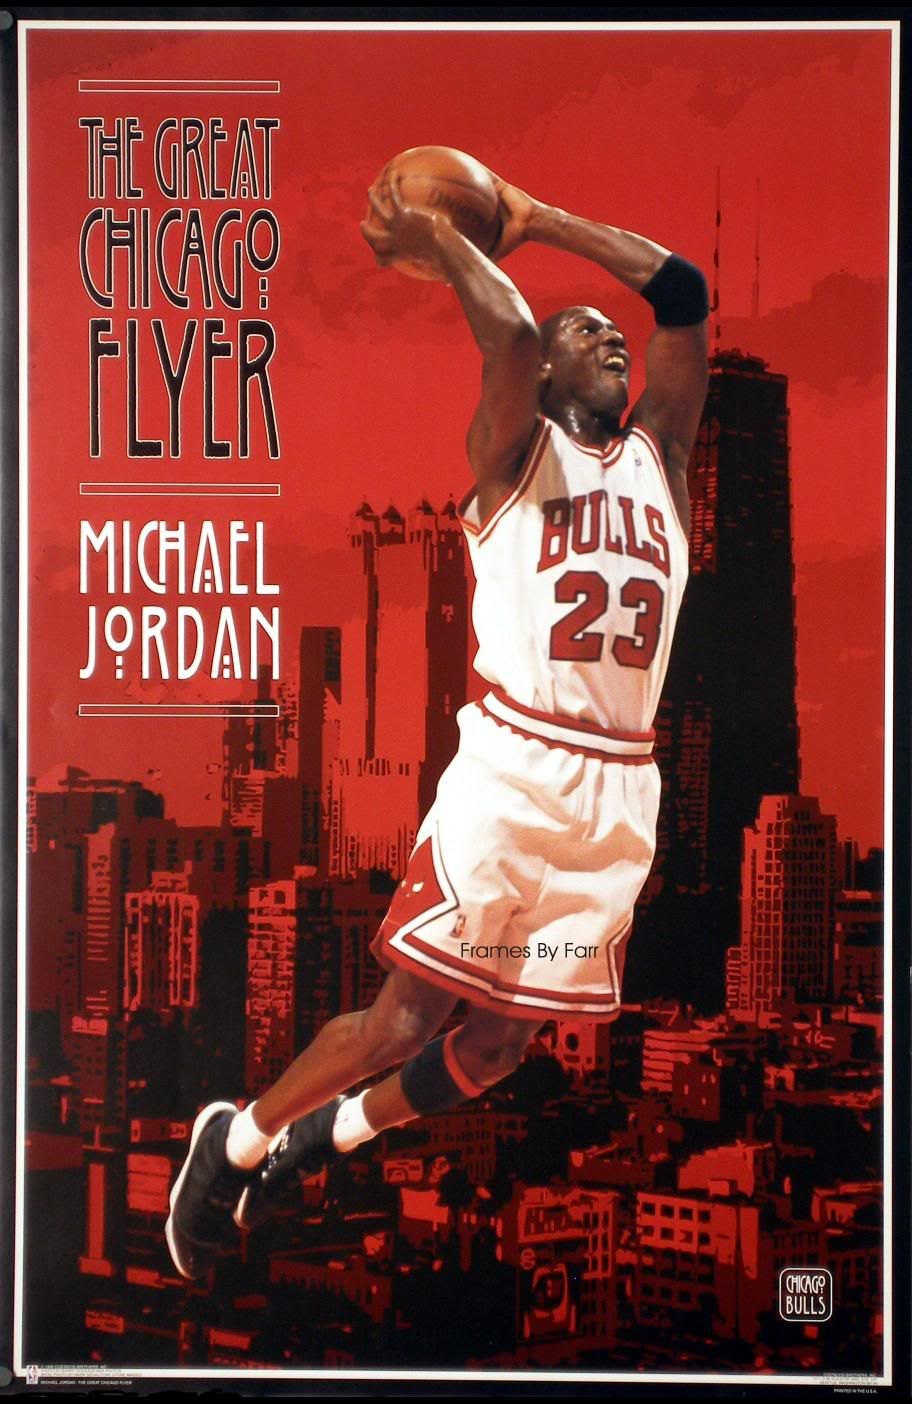 Michael Jordan The Great Chicago Flyer | Michael Jordan 23 ...